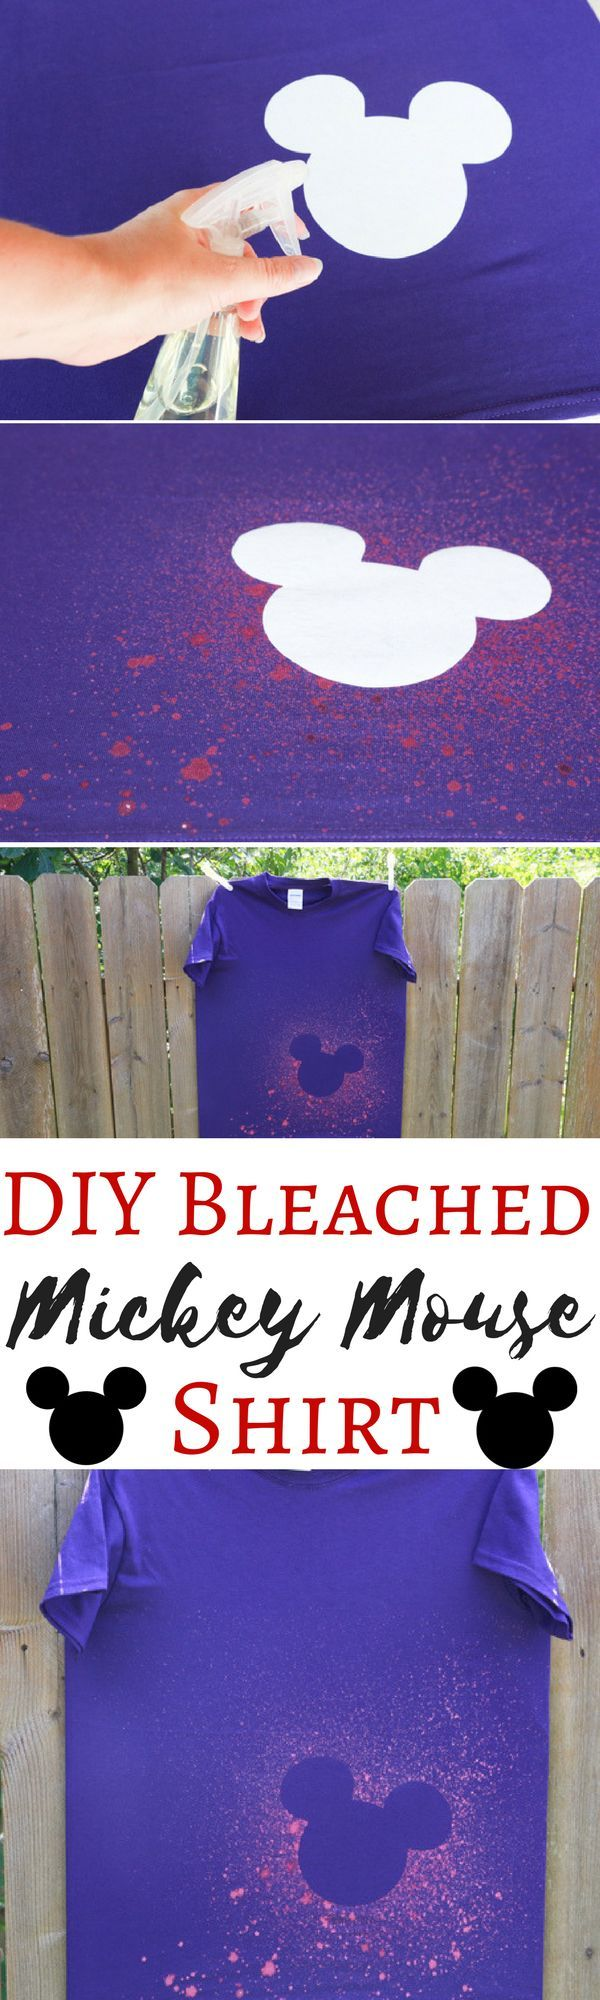 Funny family vacation t shirt ideas 1000 ideas about family vacation - Diy Bleached Mickey Mouse Shirt